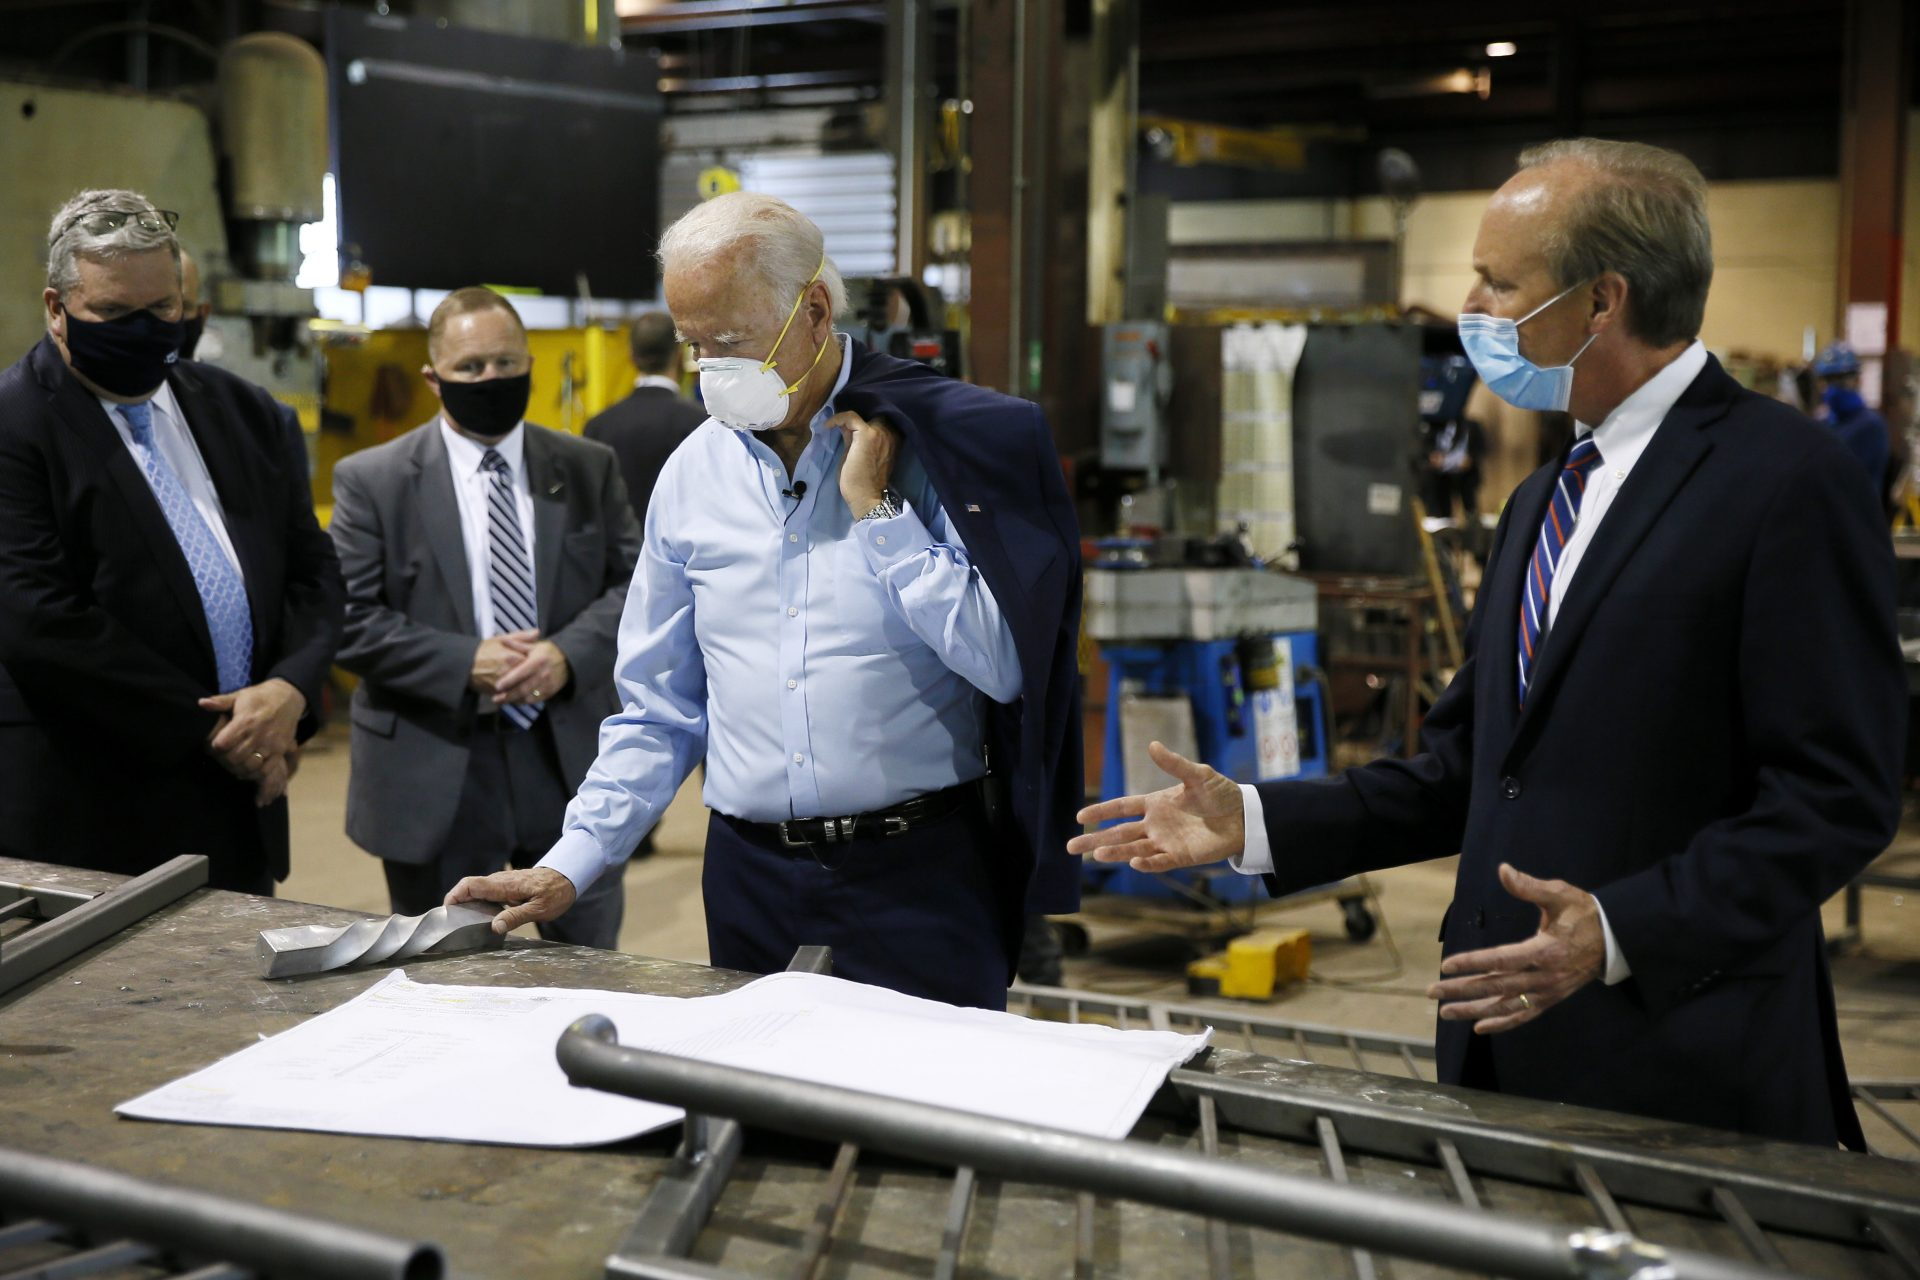 Democratic presidential candidate, former Vice President Joe Biden, center, listens to McGregor Industries owner Bob McGregor, right, give a tour of the metal fabricating facility, Thursday, July 9, 2020, in Dunmore, Pa.